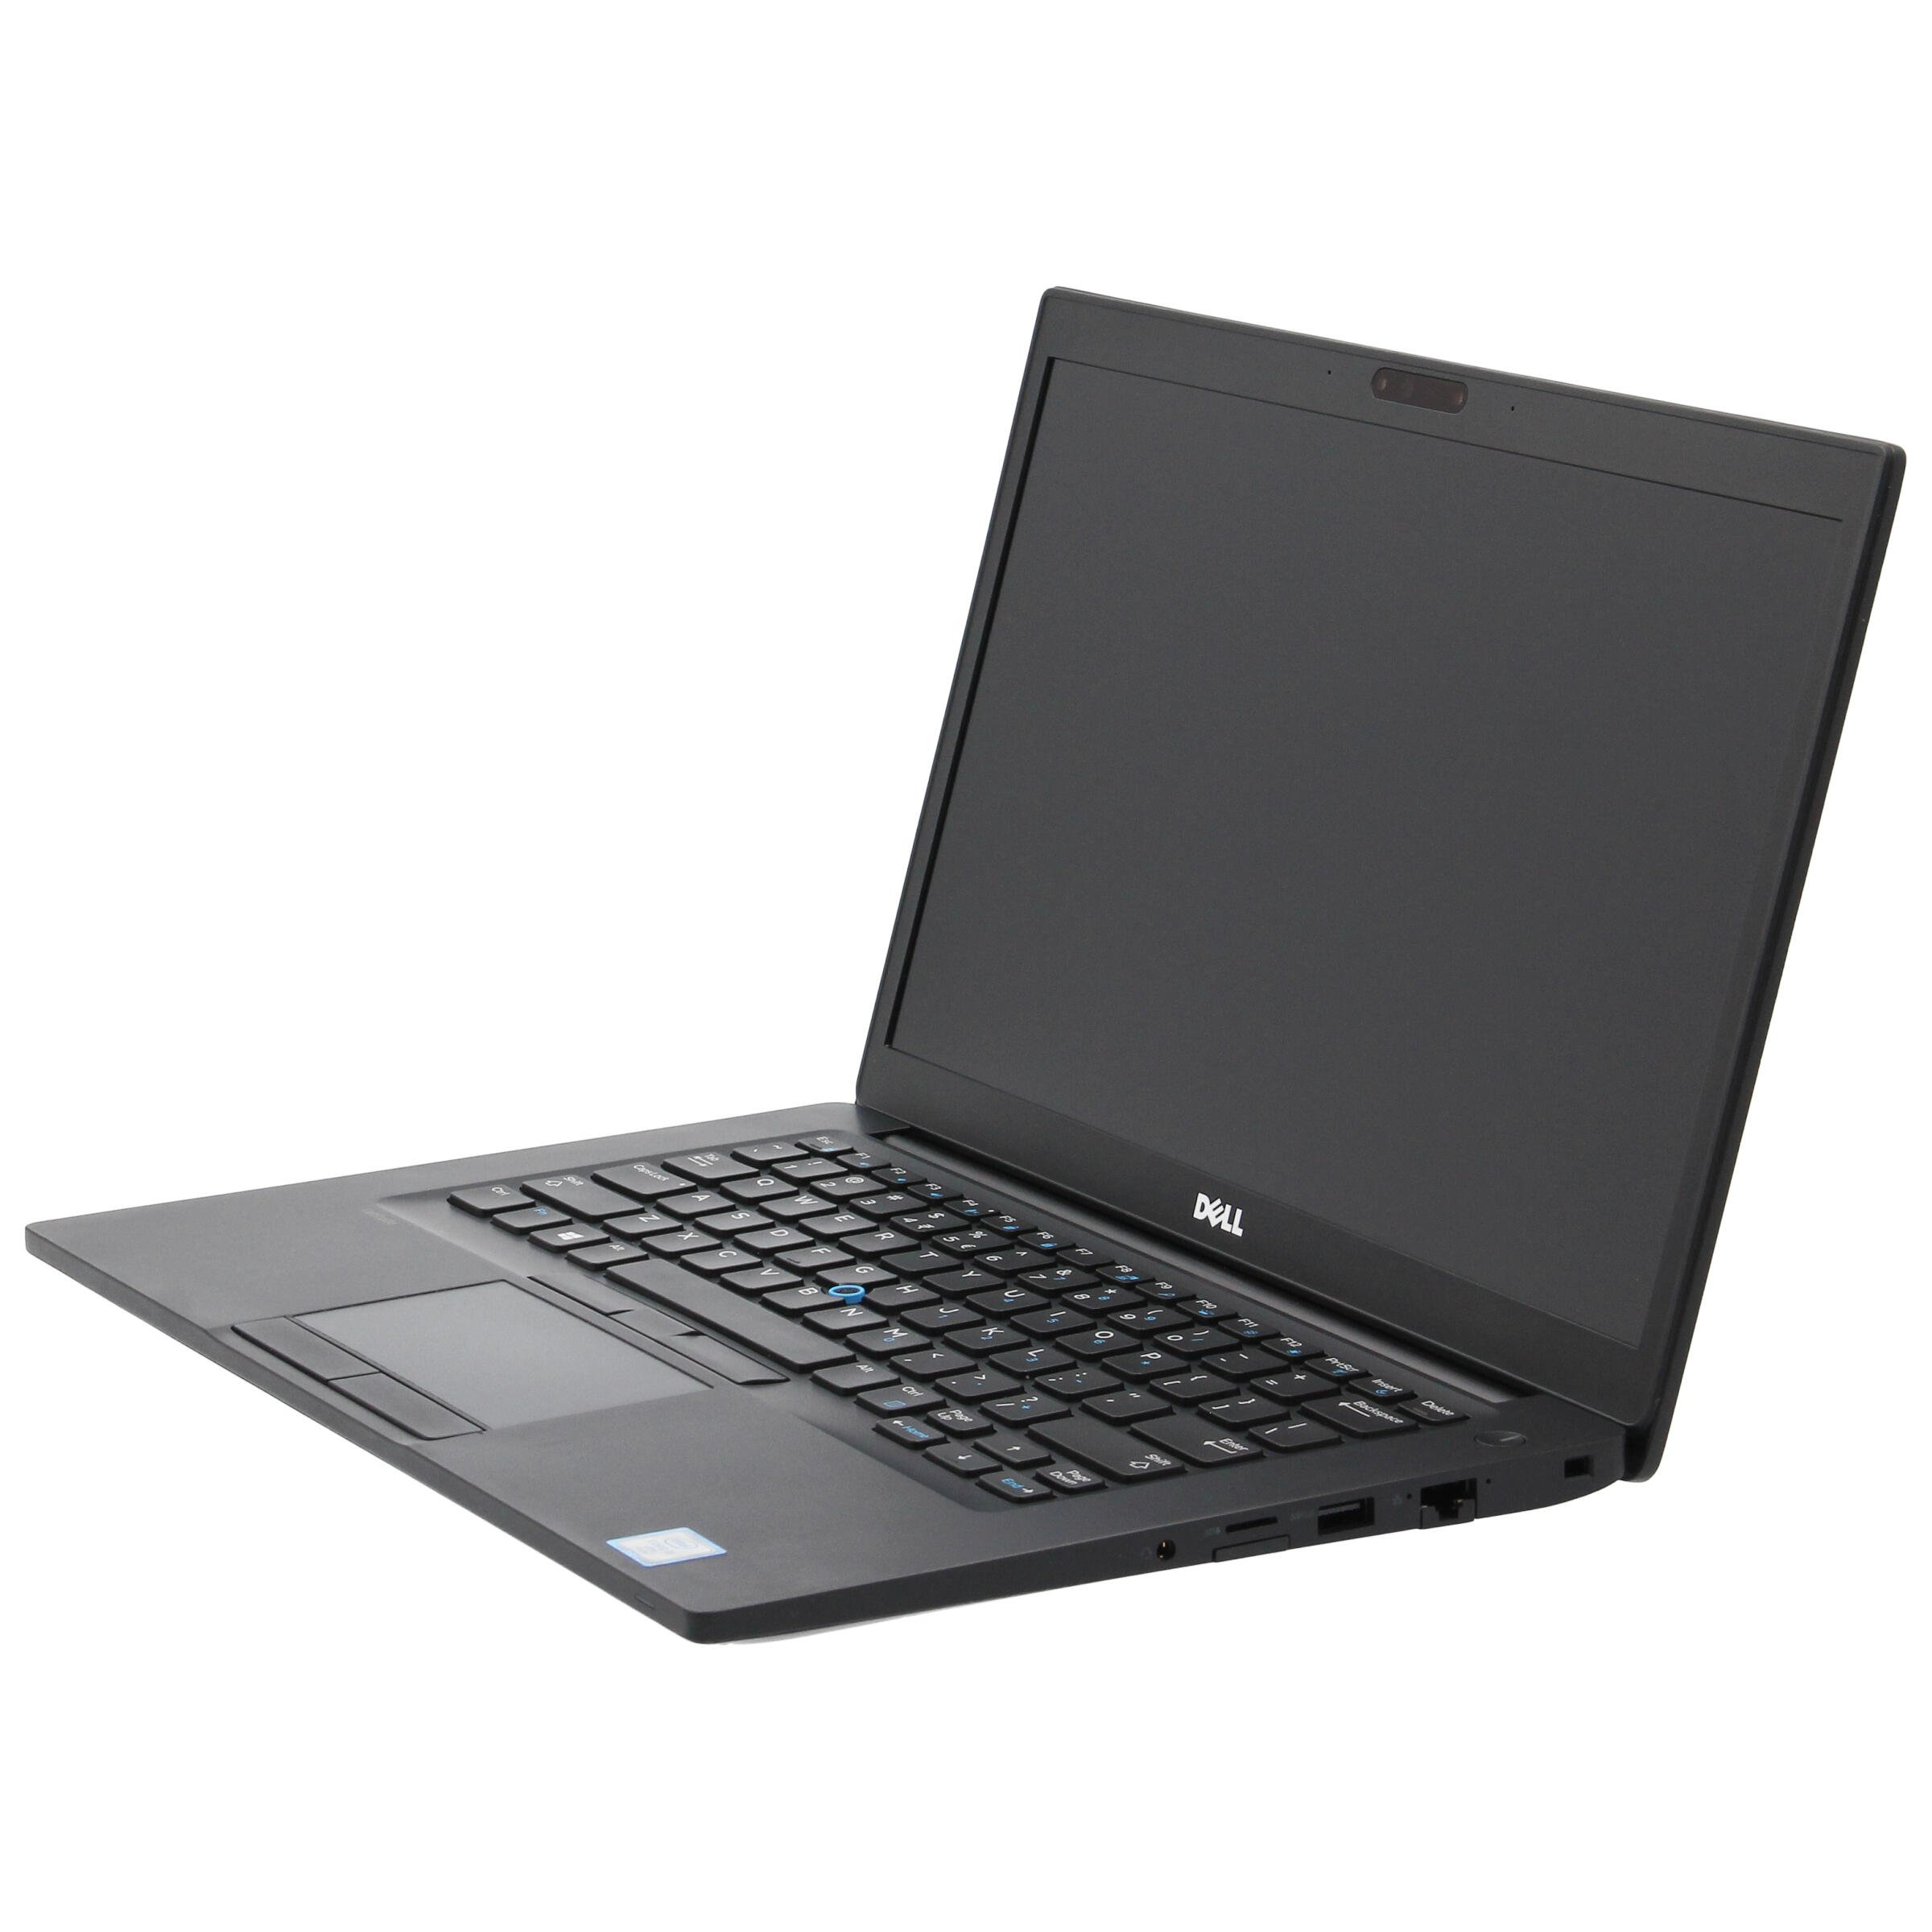 Dell Laptop do 3500 zł.